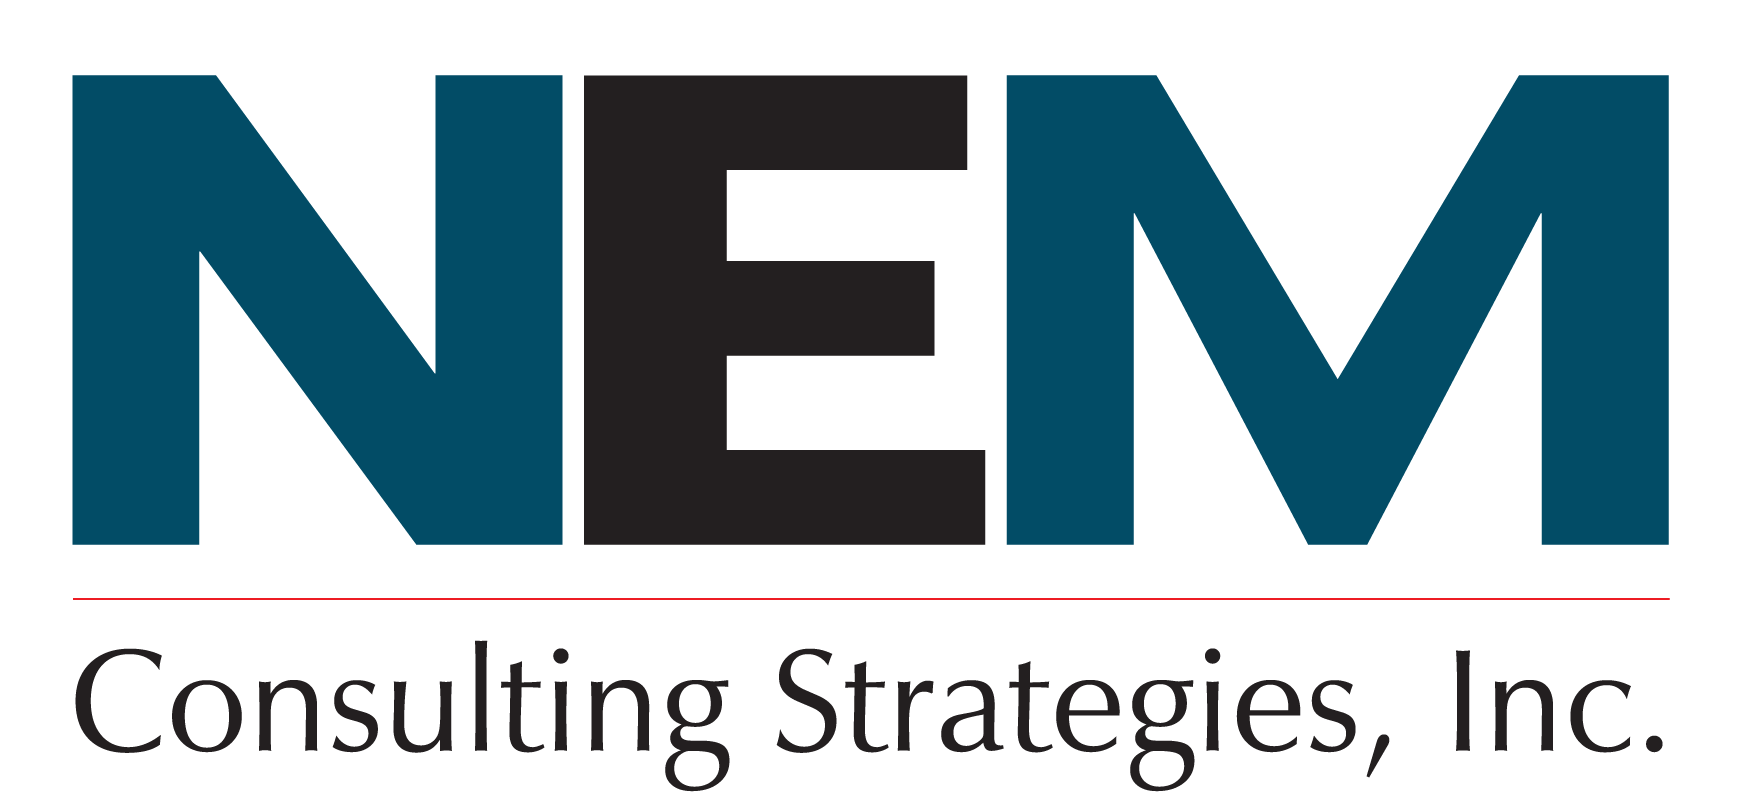 NEM Consulting Strategies, Inc.